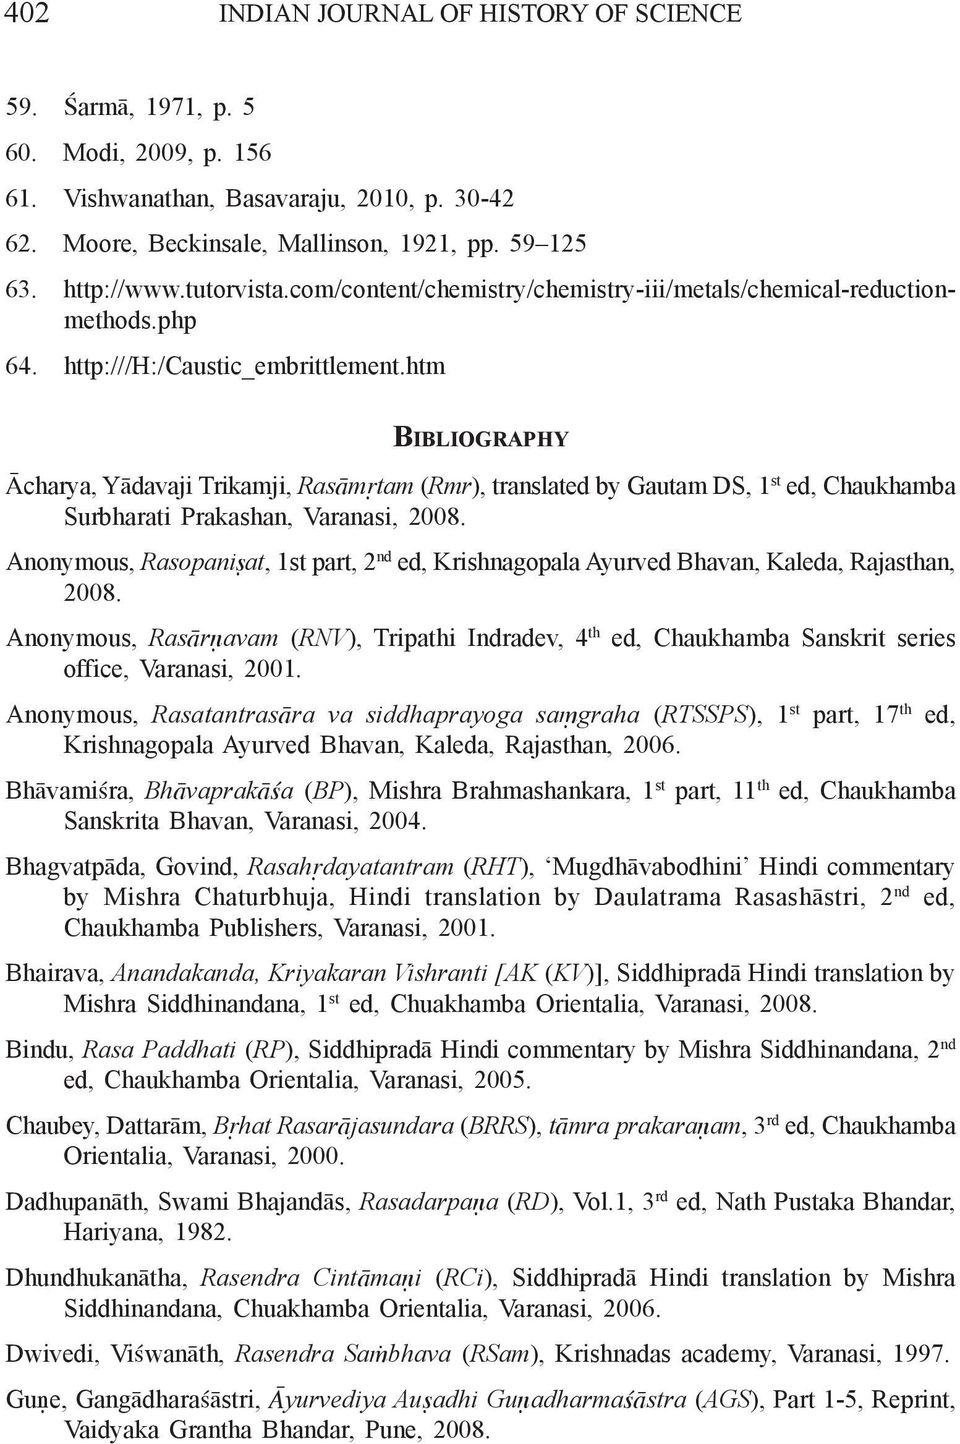 Purification And Detoxification Procedures For Metal Ta Mra In How To Read Electrical Drawings Tutorvista Answers Htm Bibliography Charya Ydavaji Trikamji Rasm Tam Rmr Translated By Gautam